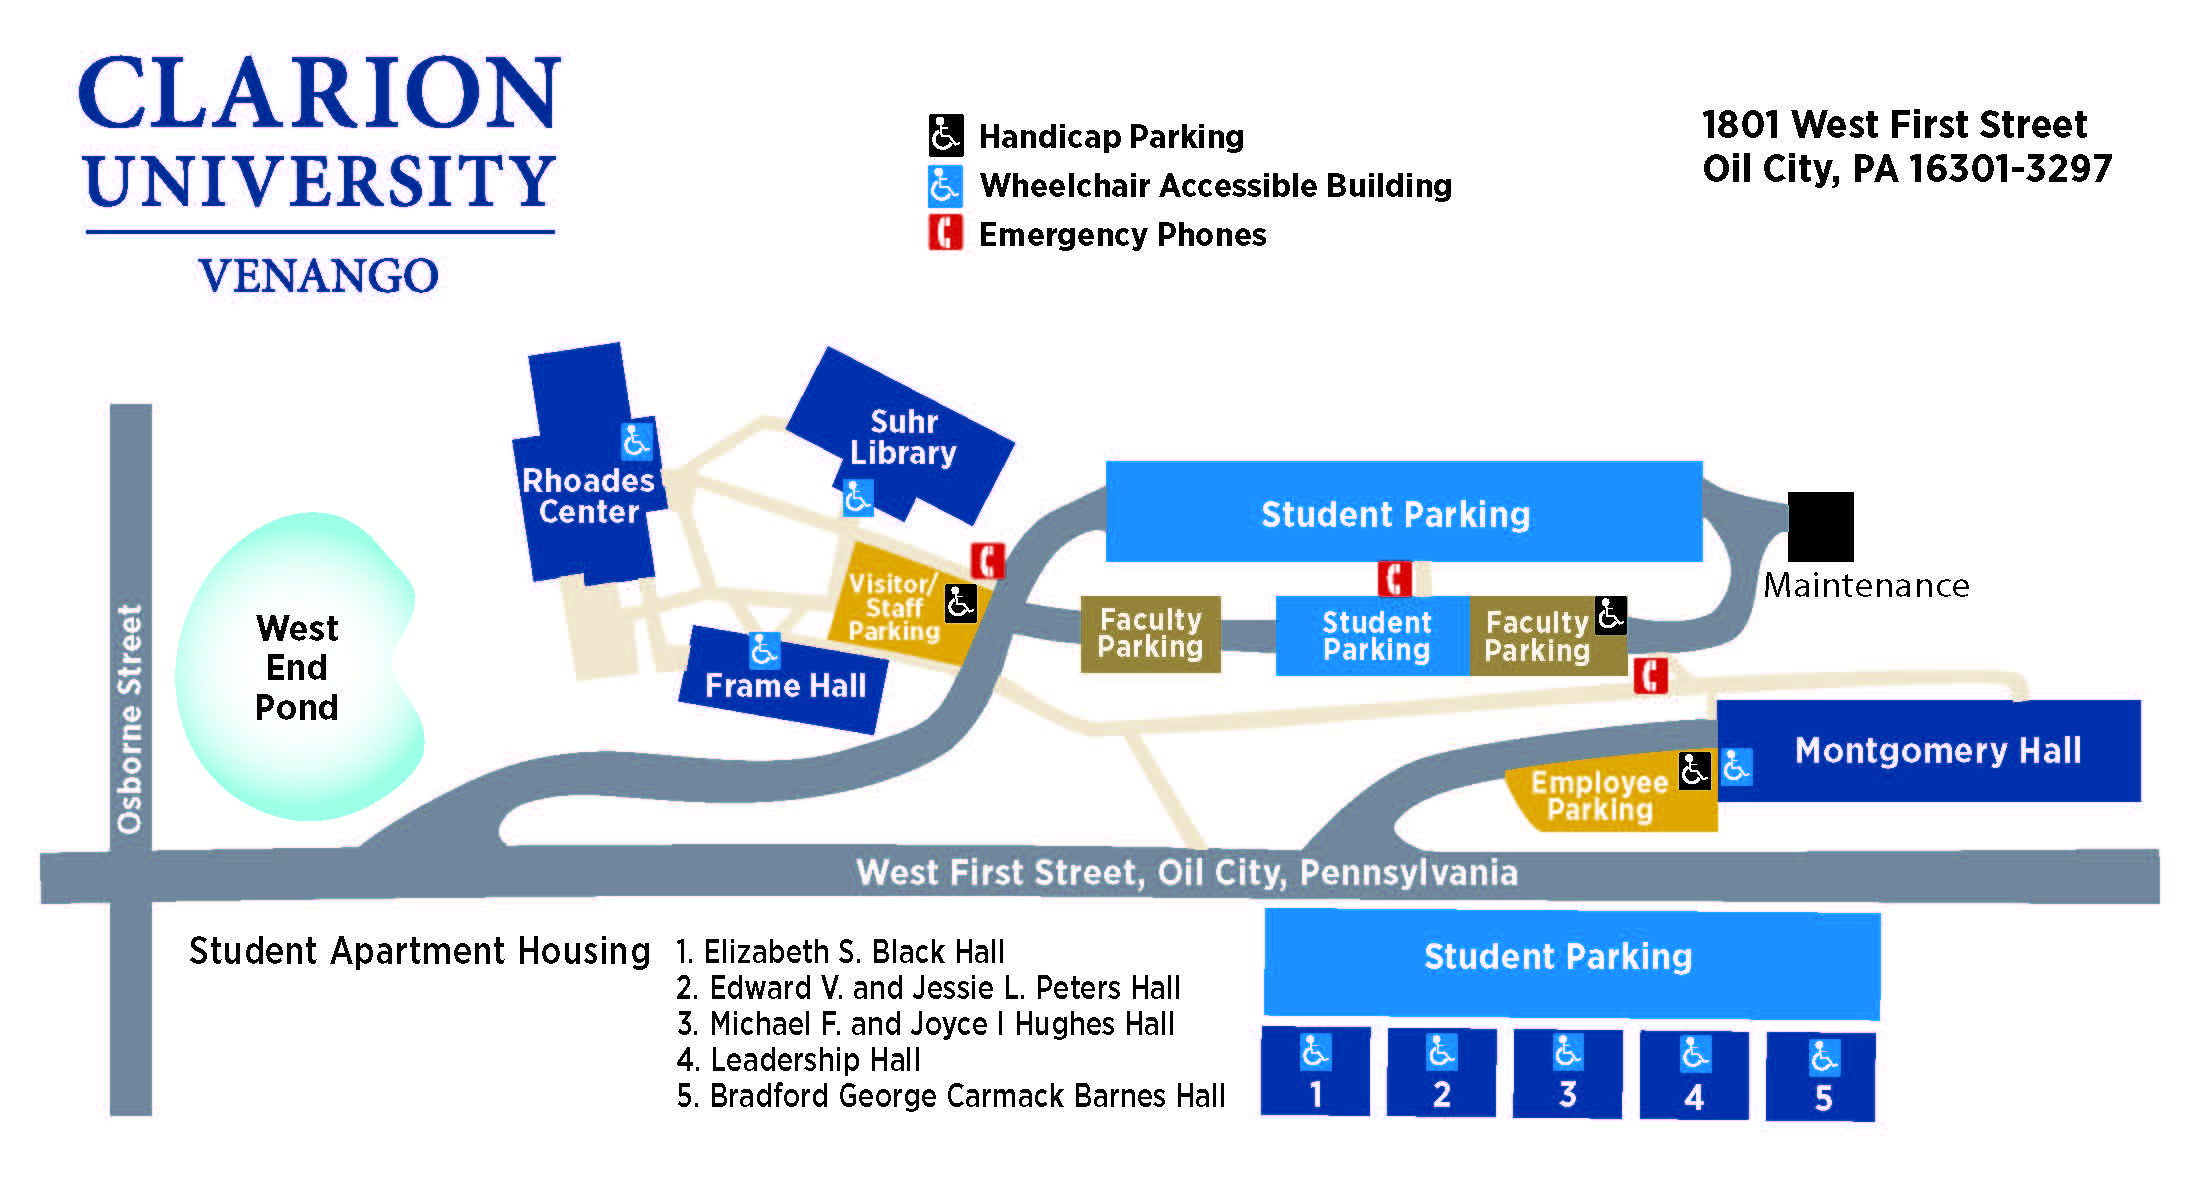 Venango campus map